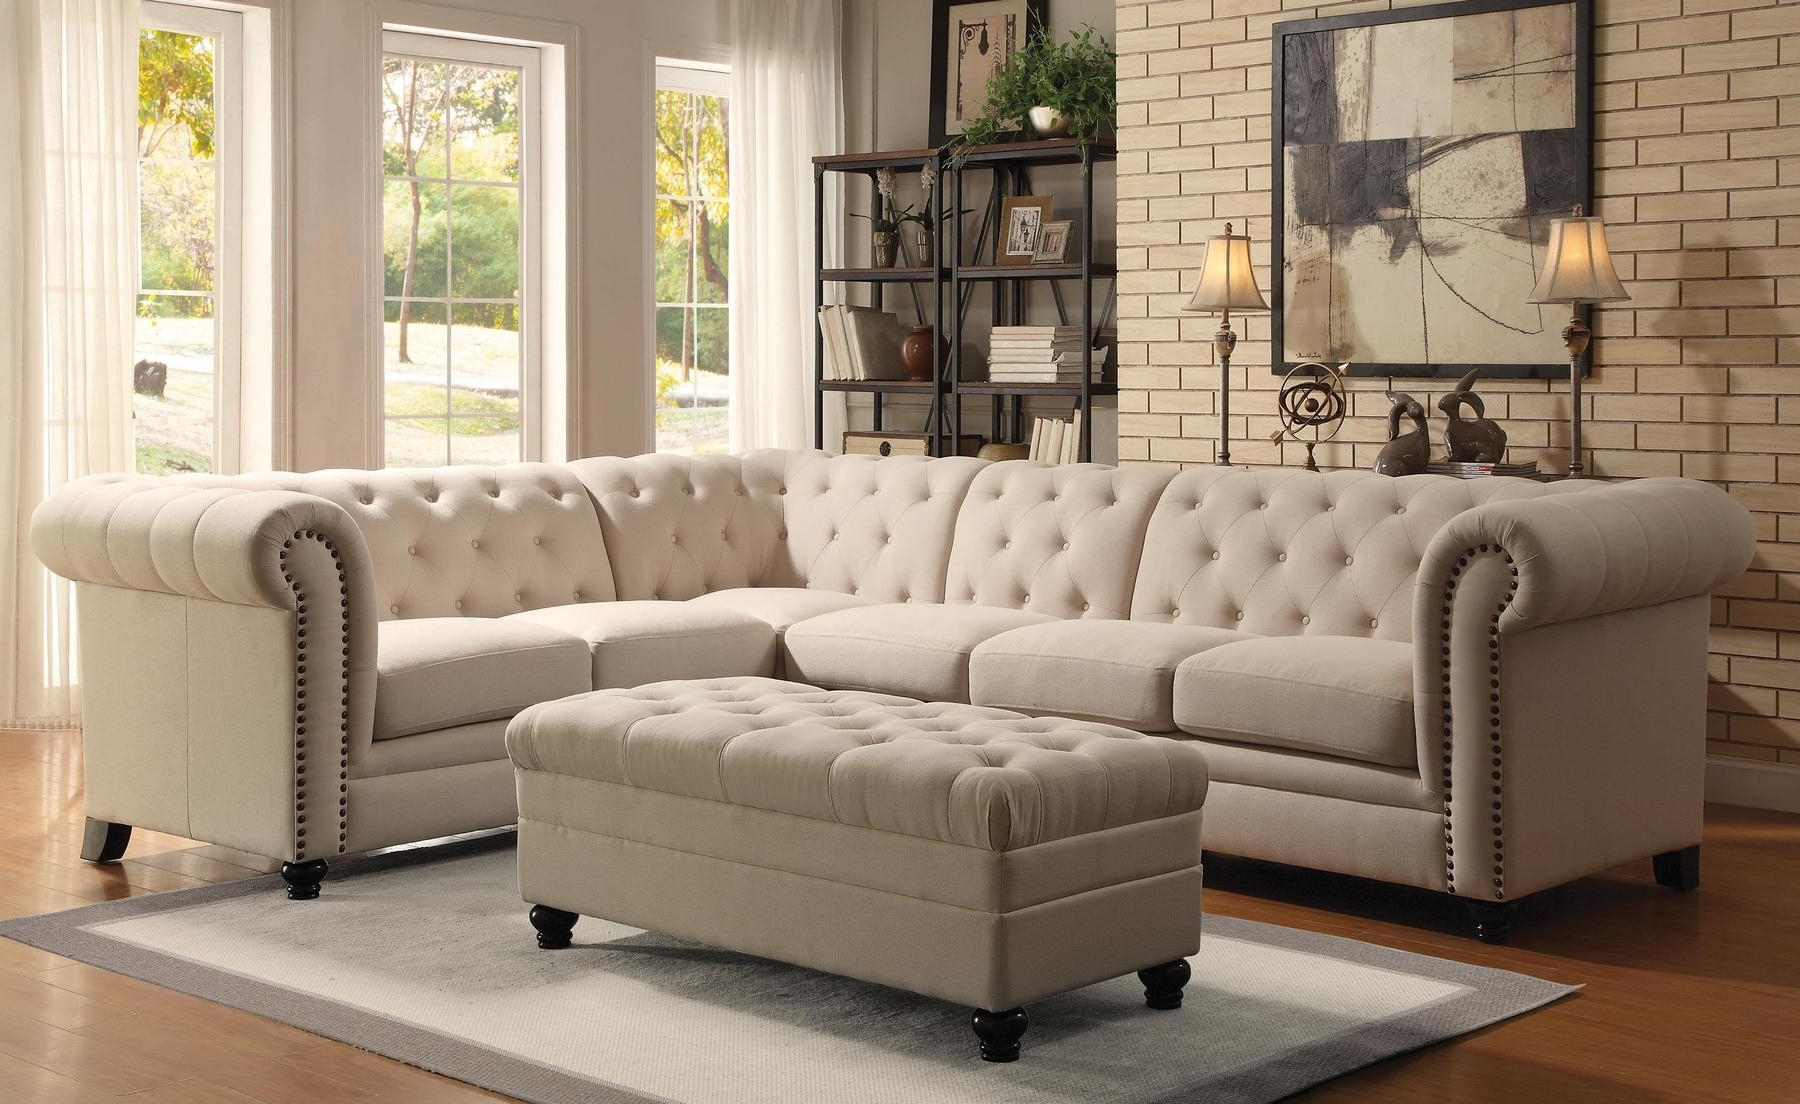 Latest Roy Oatmeal Sectional Sofa 500222 Coaster Furniture Sectional Intended For Good Quality Sectional Sofas (View 20 of 20)